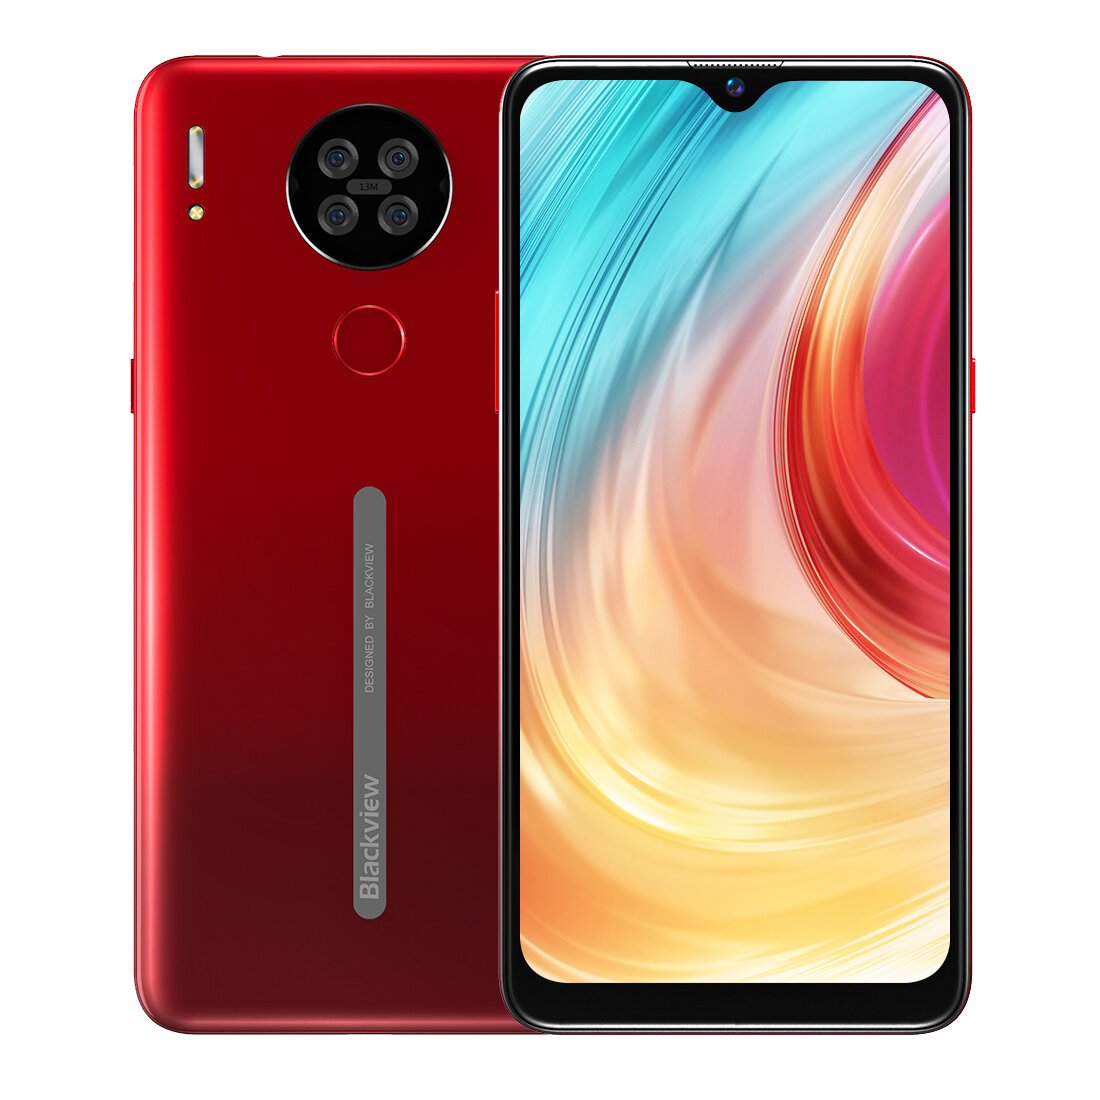 Blackview A80 6.217 inch HD+ Waterdrop Display 3800mAh Android 10 Go 13MP Quad Rear Camera 2GB 16GB MT6737V/W Quad Core 4G Smartphone - Red